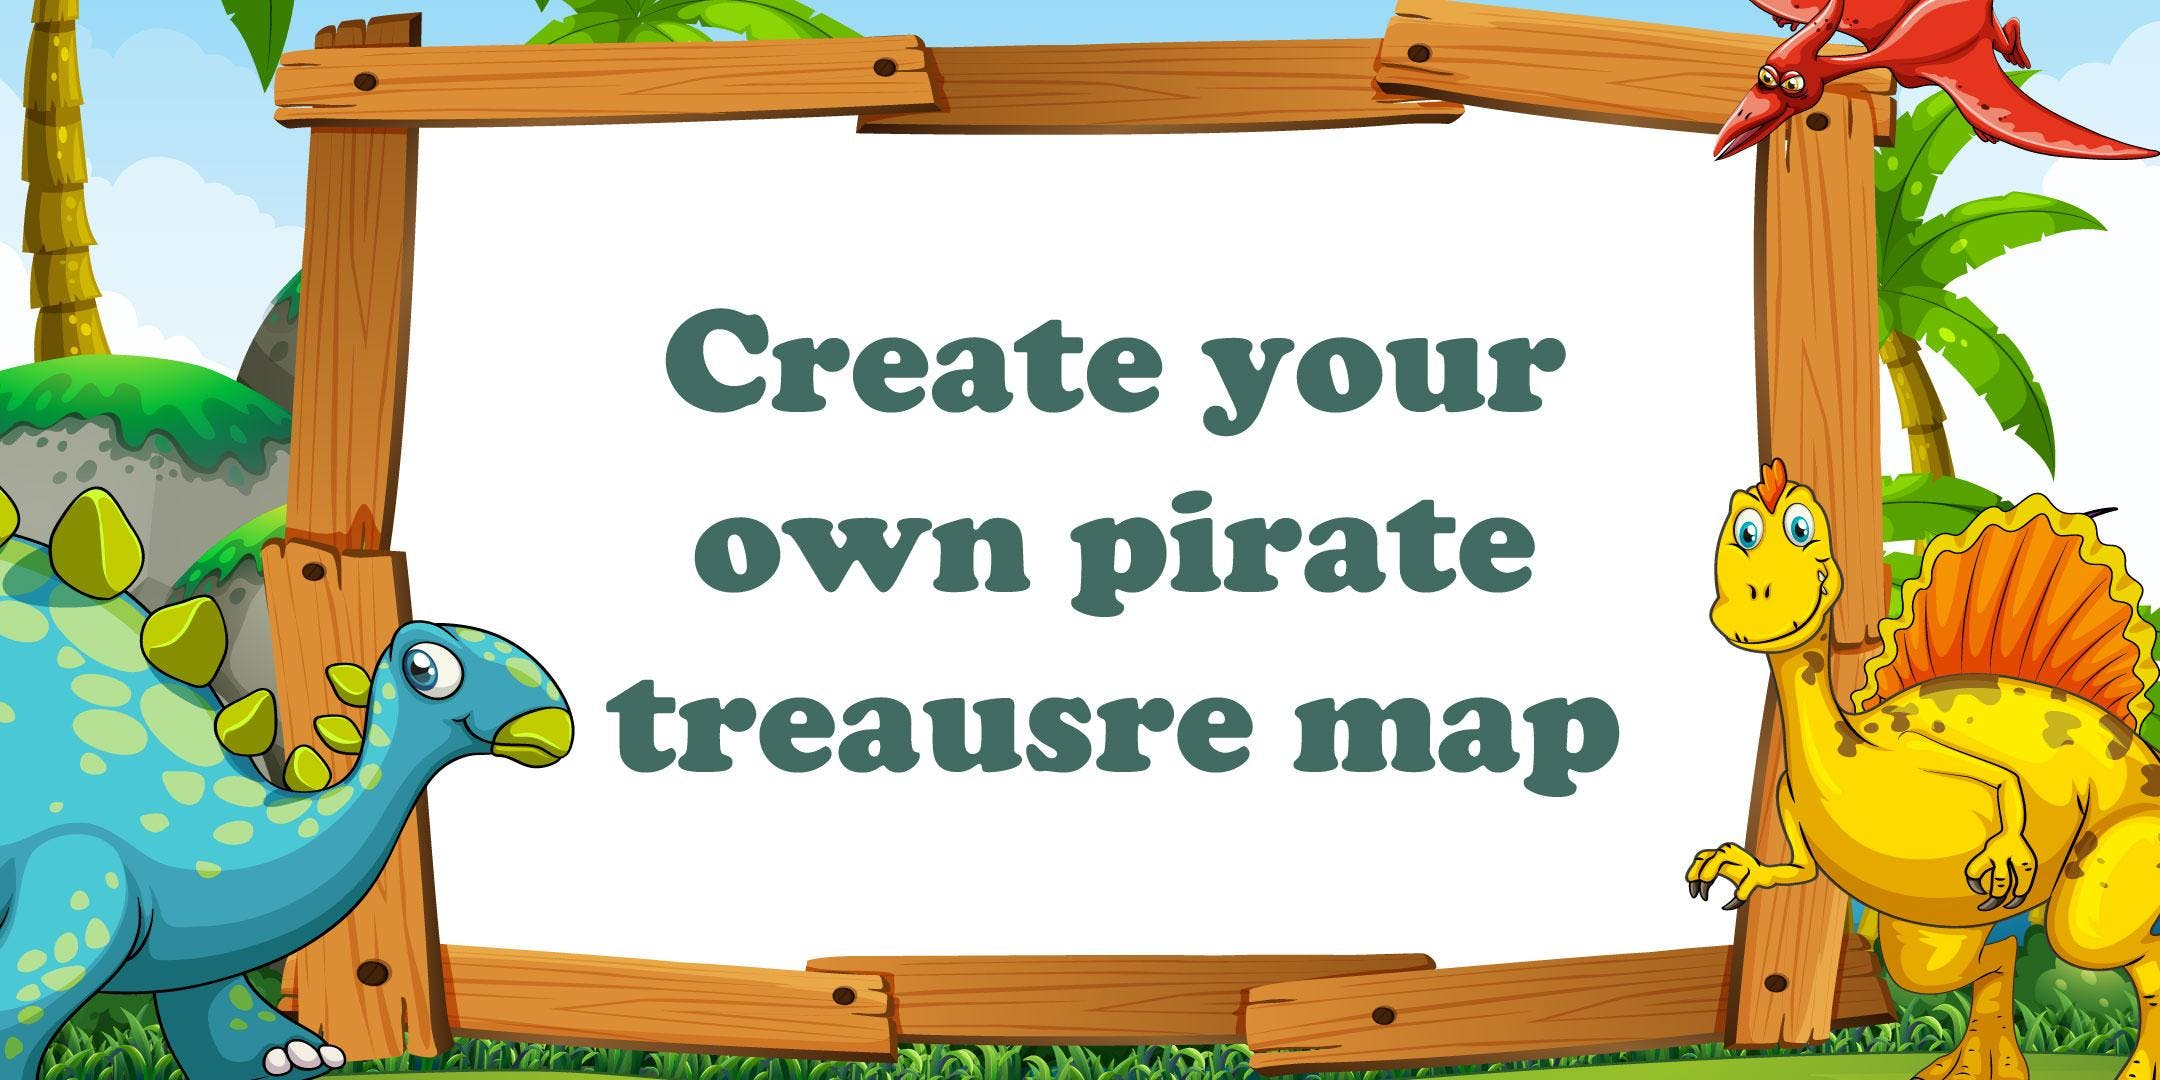 create your own pirate treasure map 3 oct 2018